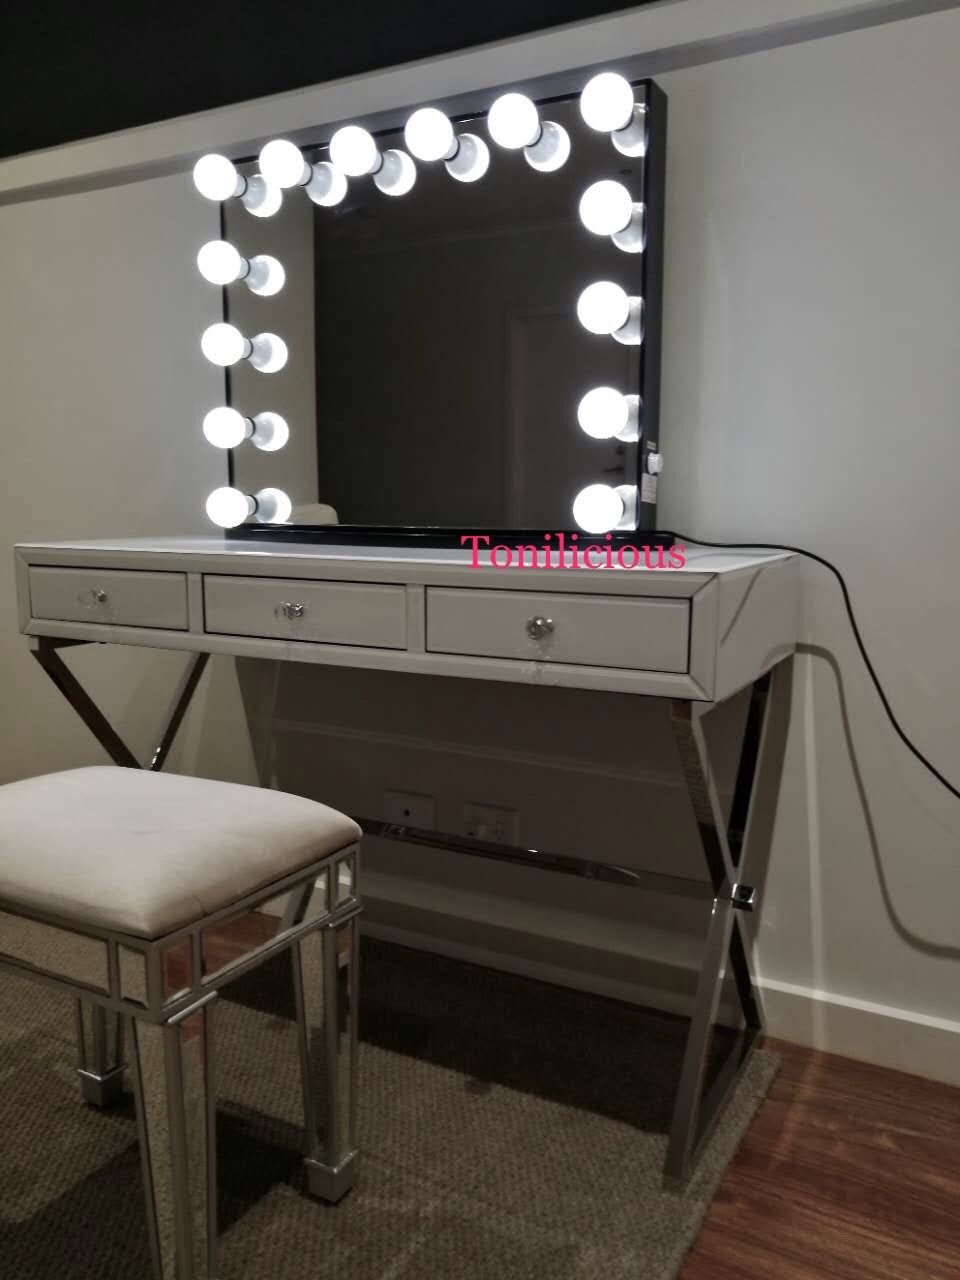 Large Frameless Hollywood Makeup Beauty Vanity Mirror With Lights Saa Approved